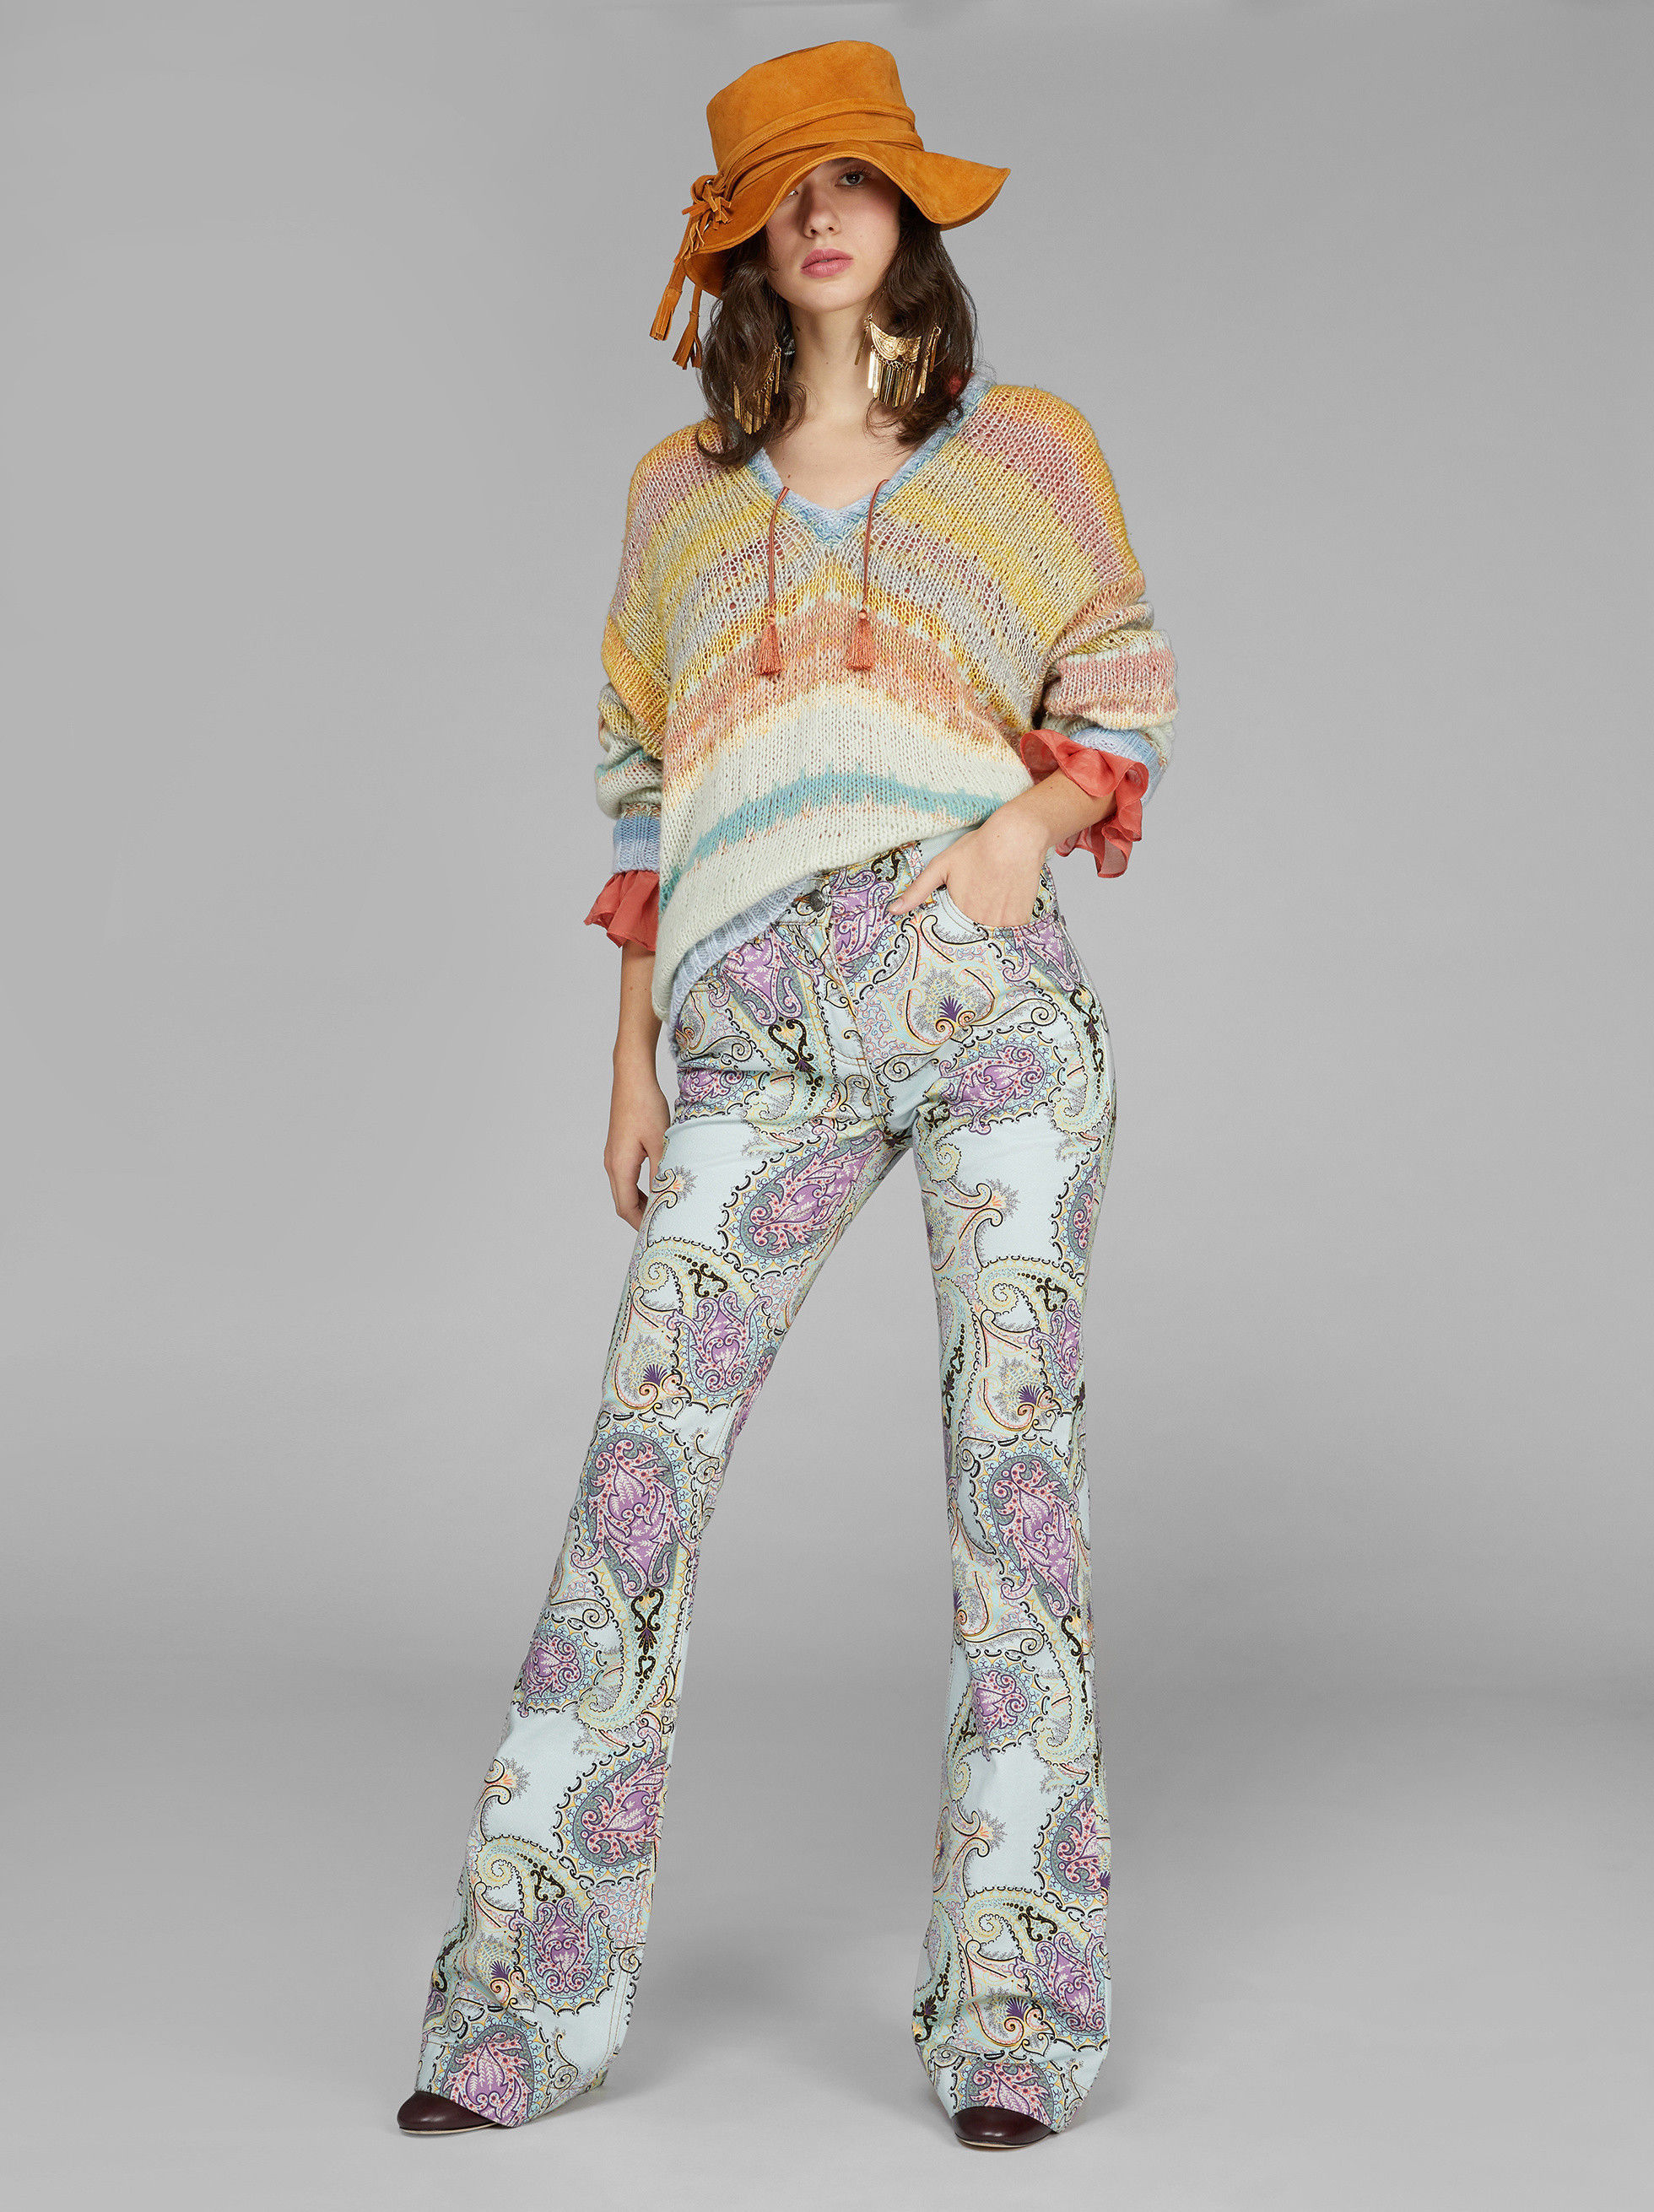 PAISLEY PRINT FLARED JEANS by Etro, available on etro.com Bella Hadid Pants SIMILAR PRODUCT